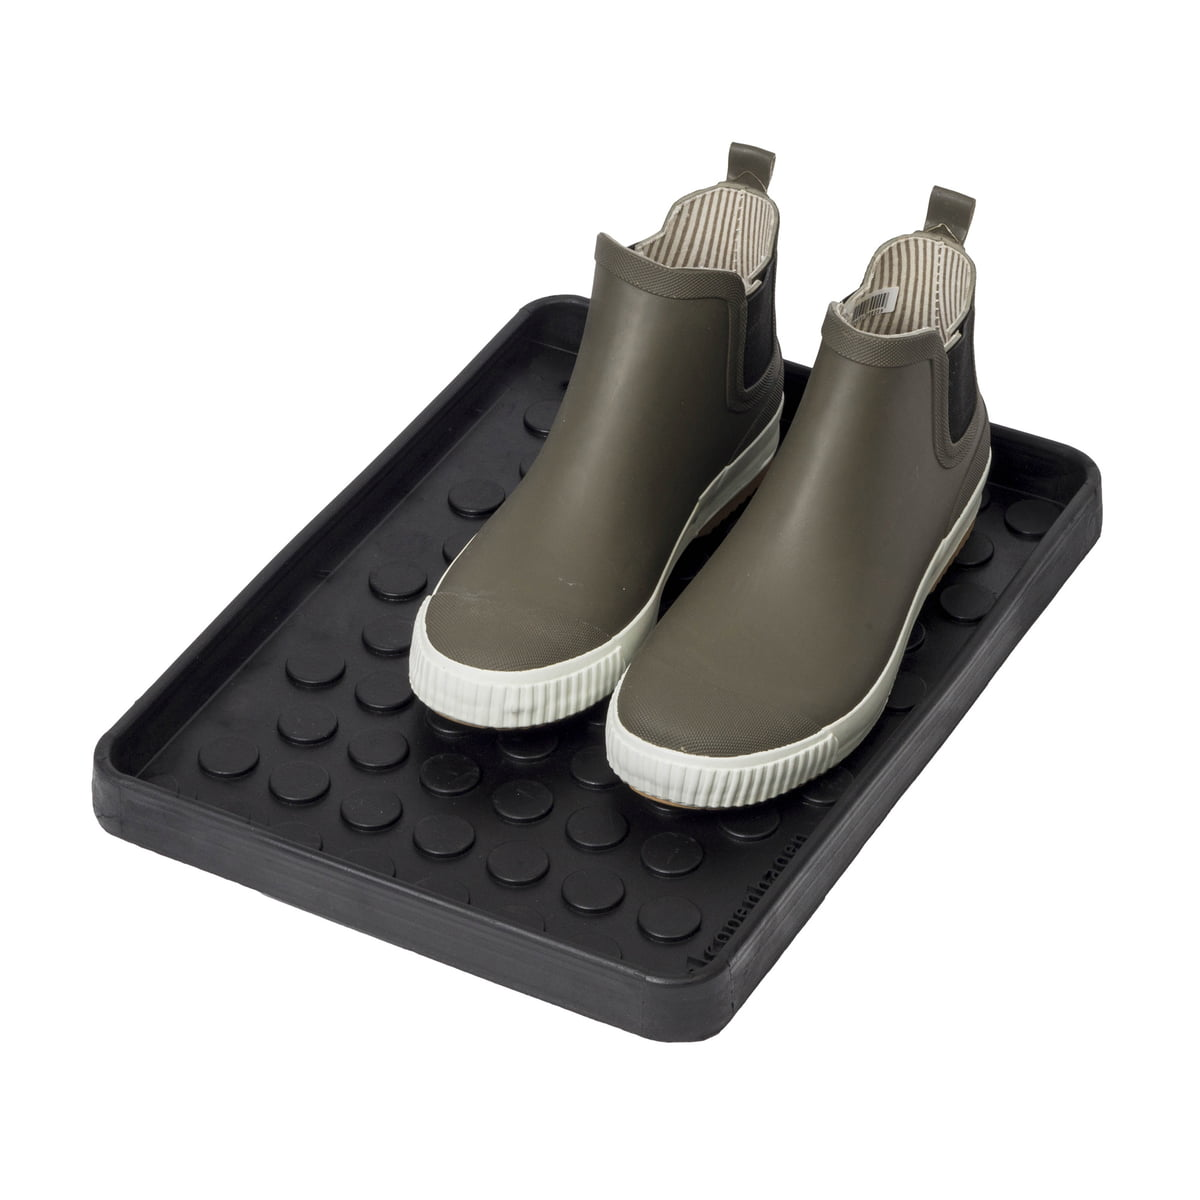 the shoe and boot tray by tica copenhagen